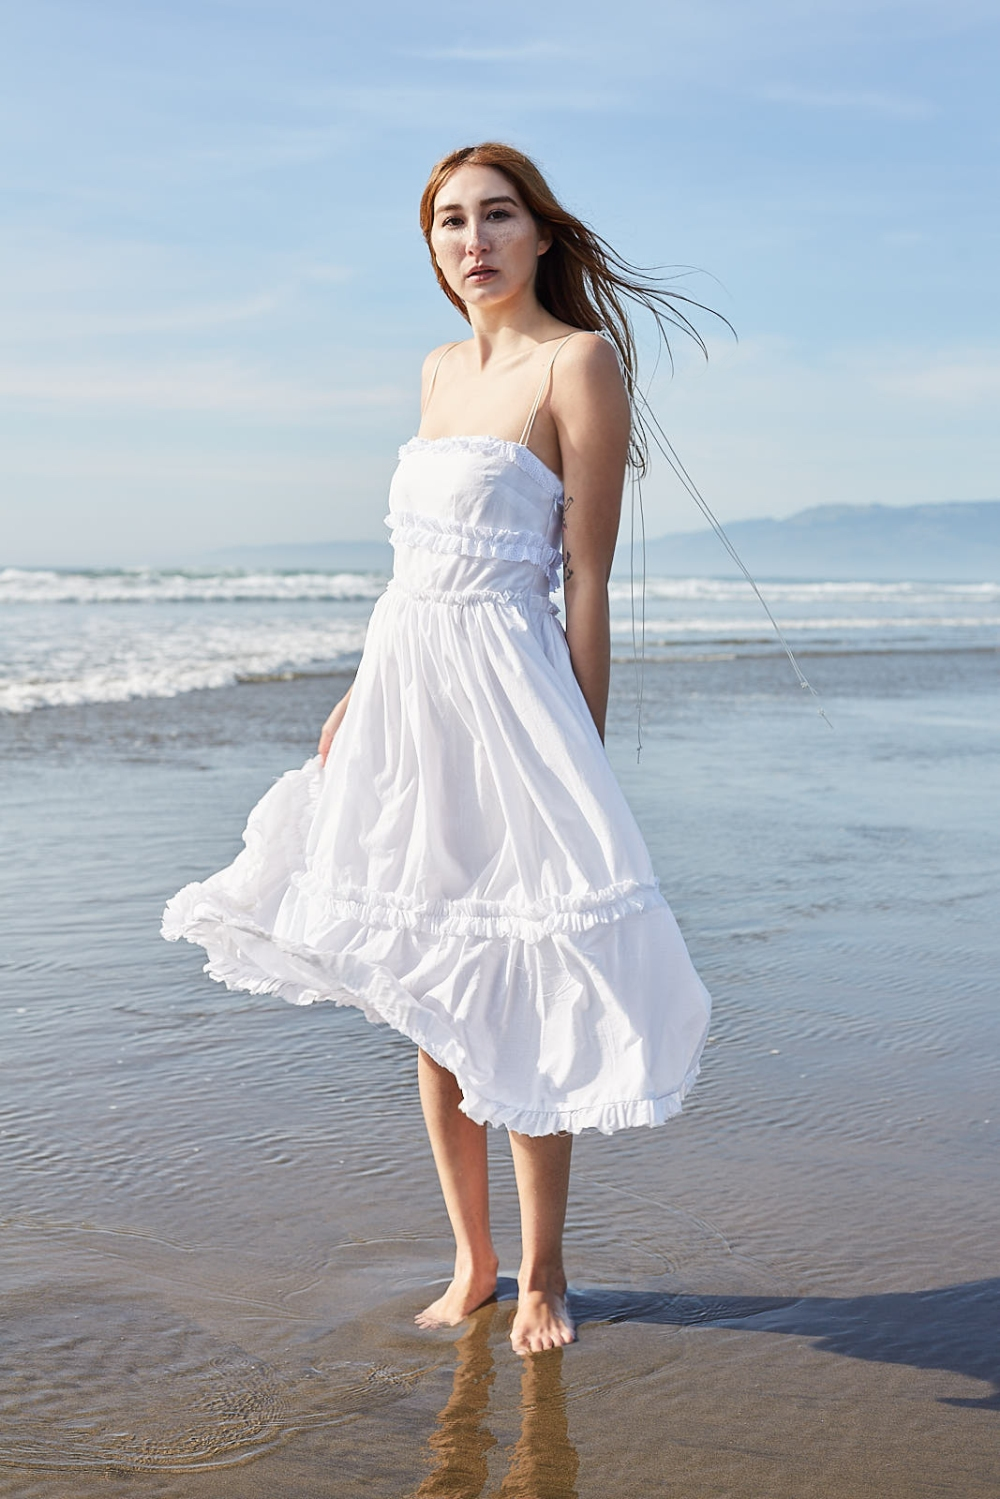 Alyssa_Nicole_Spring_2018_April_Dress_SS18_46A7937